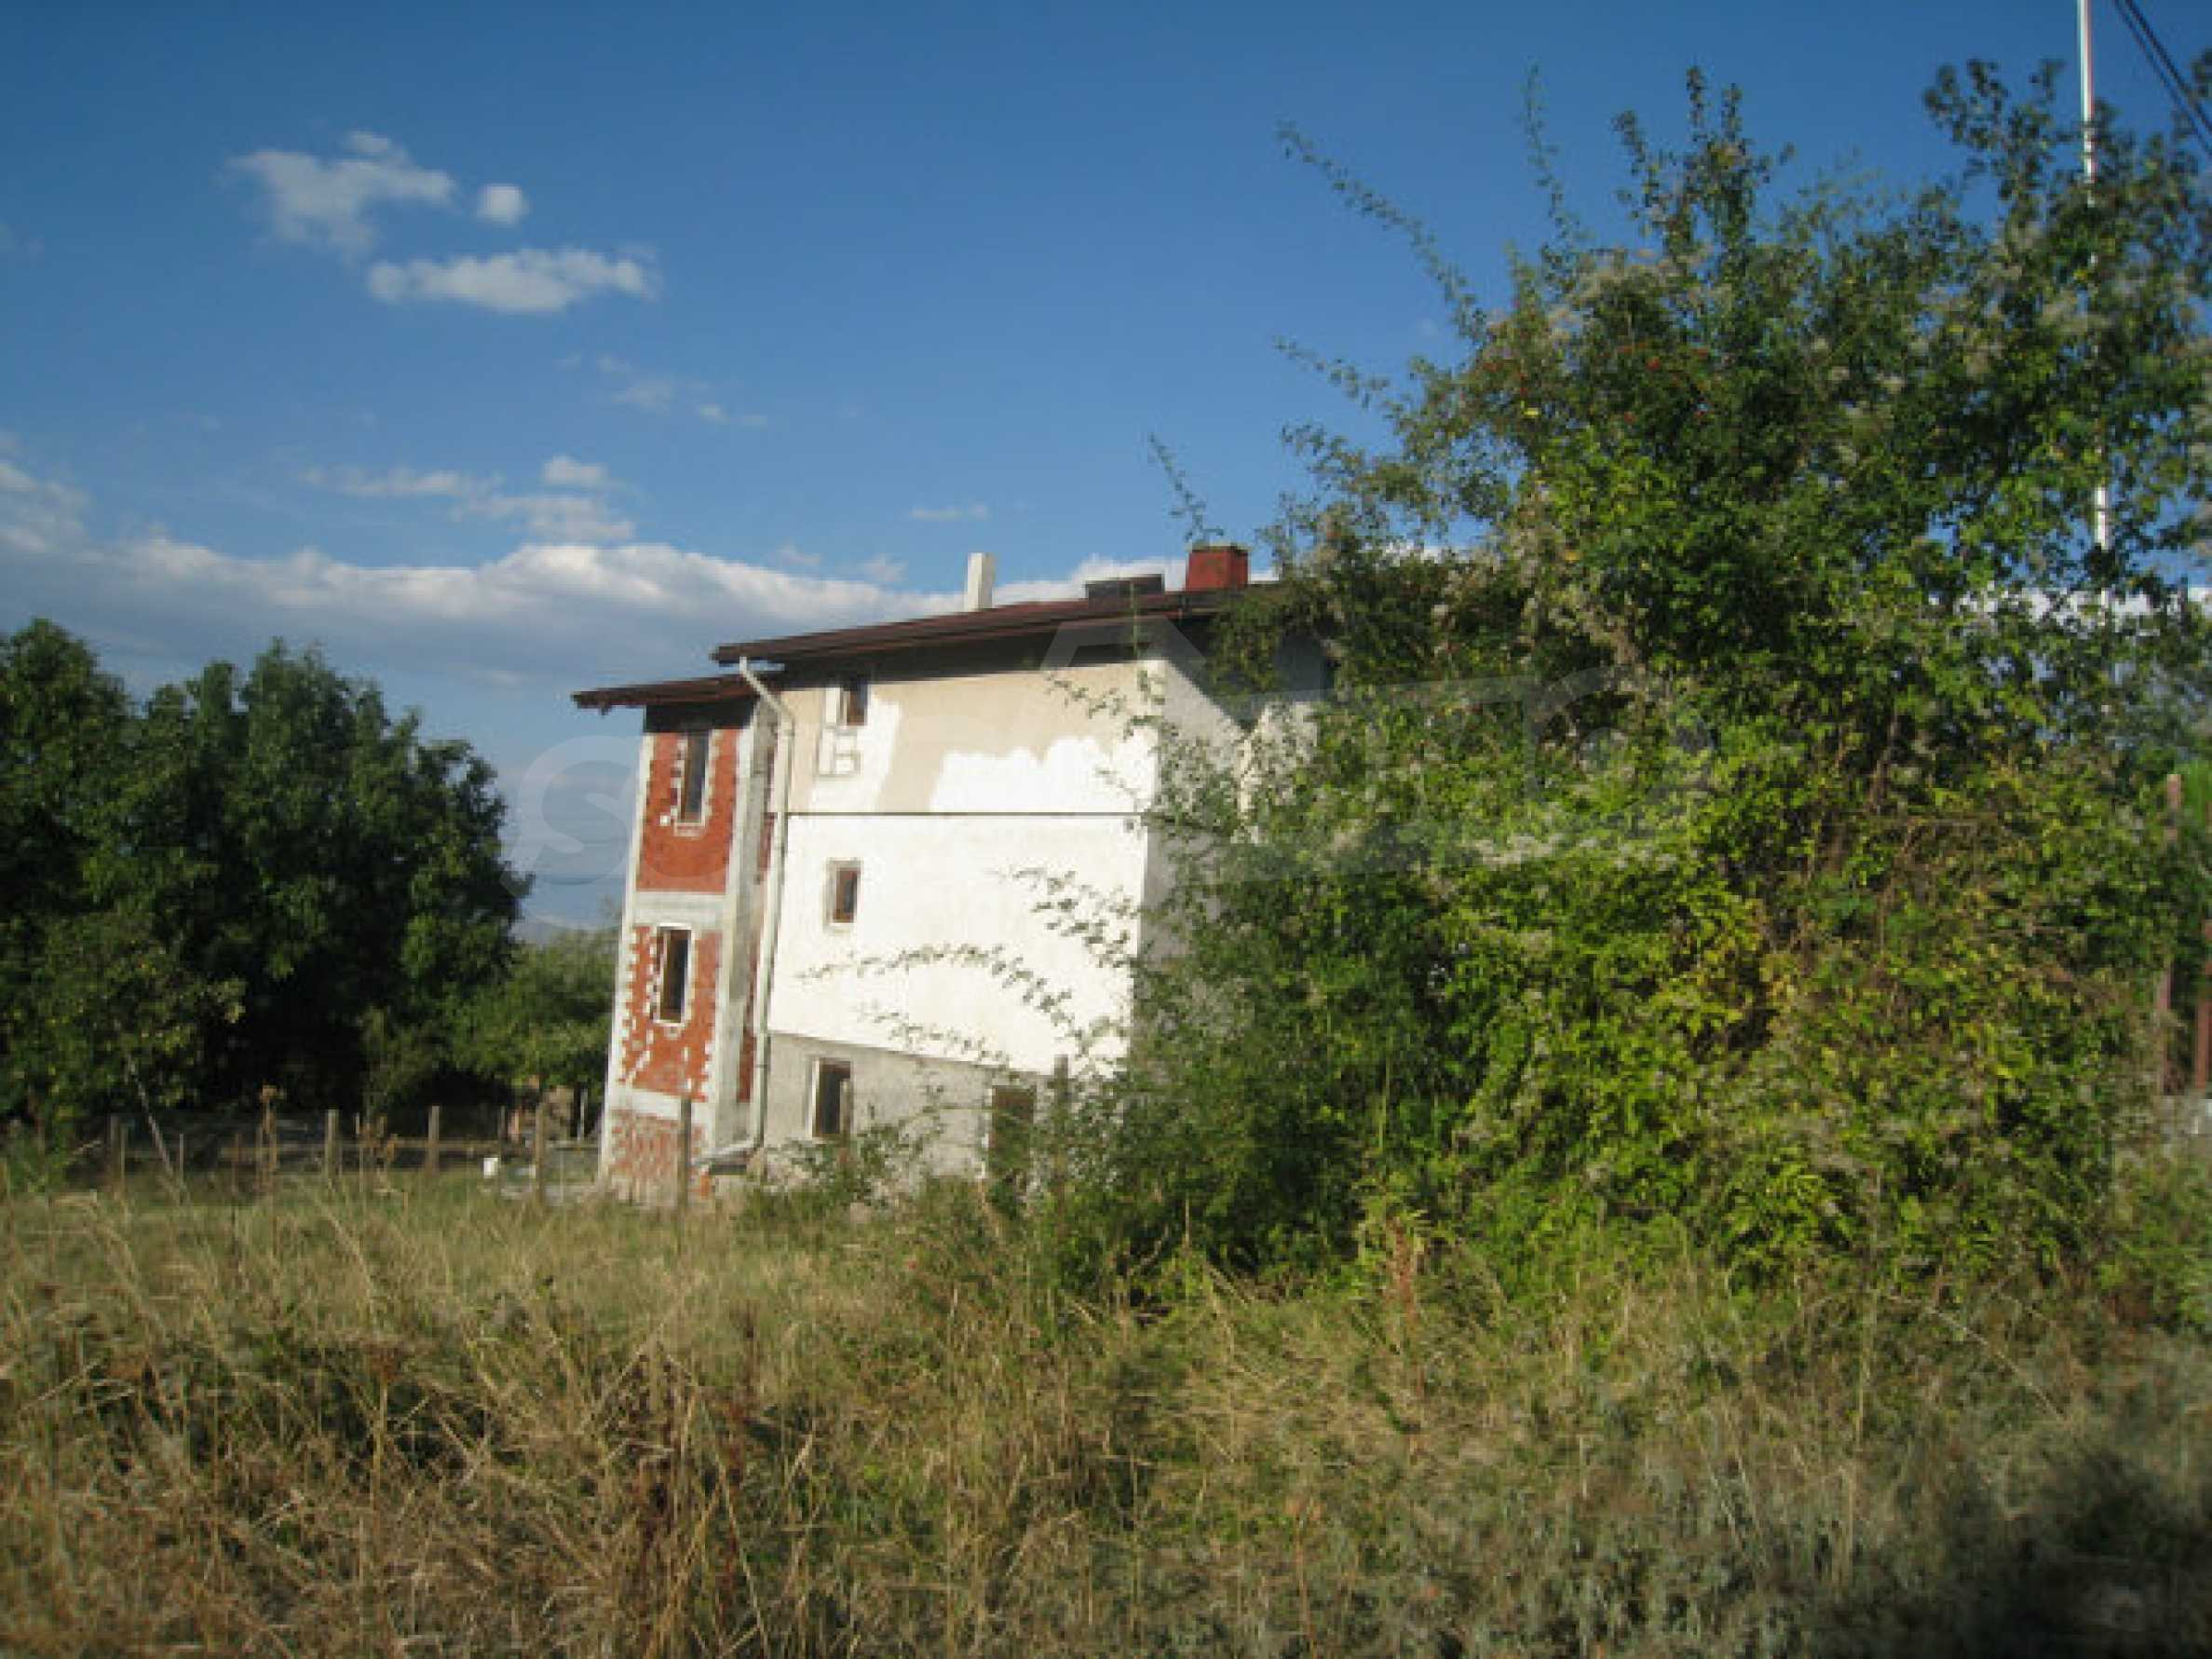 Regulated plot of land for rural private house or villa near Sofia 2